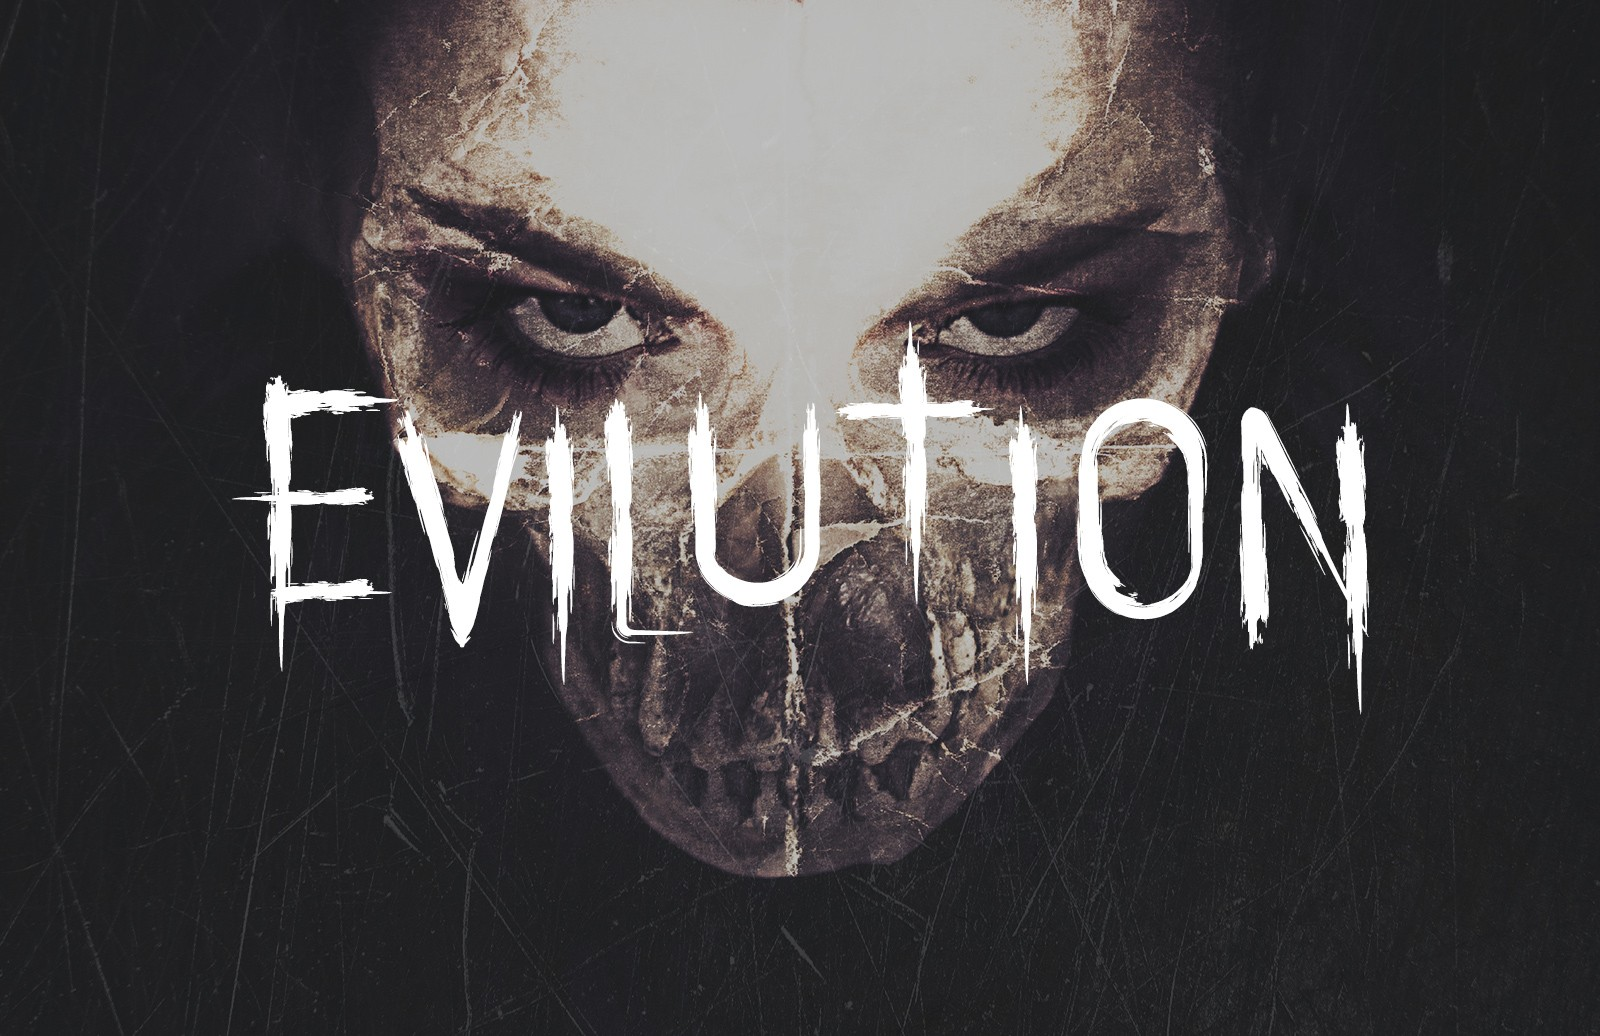 Evilution  Distressed  Horror  Typeface  Preview 1A